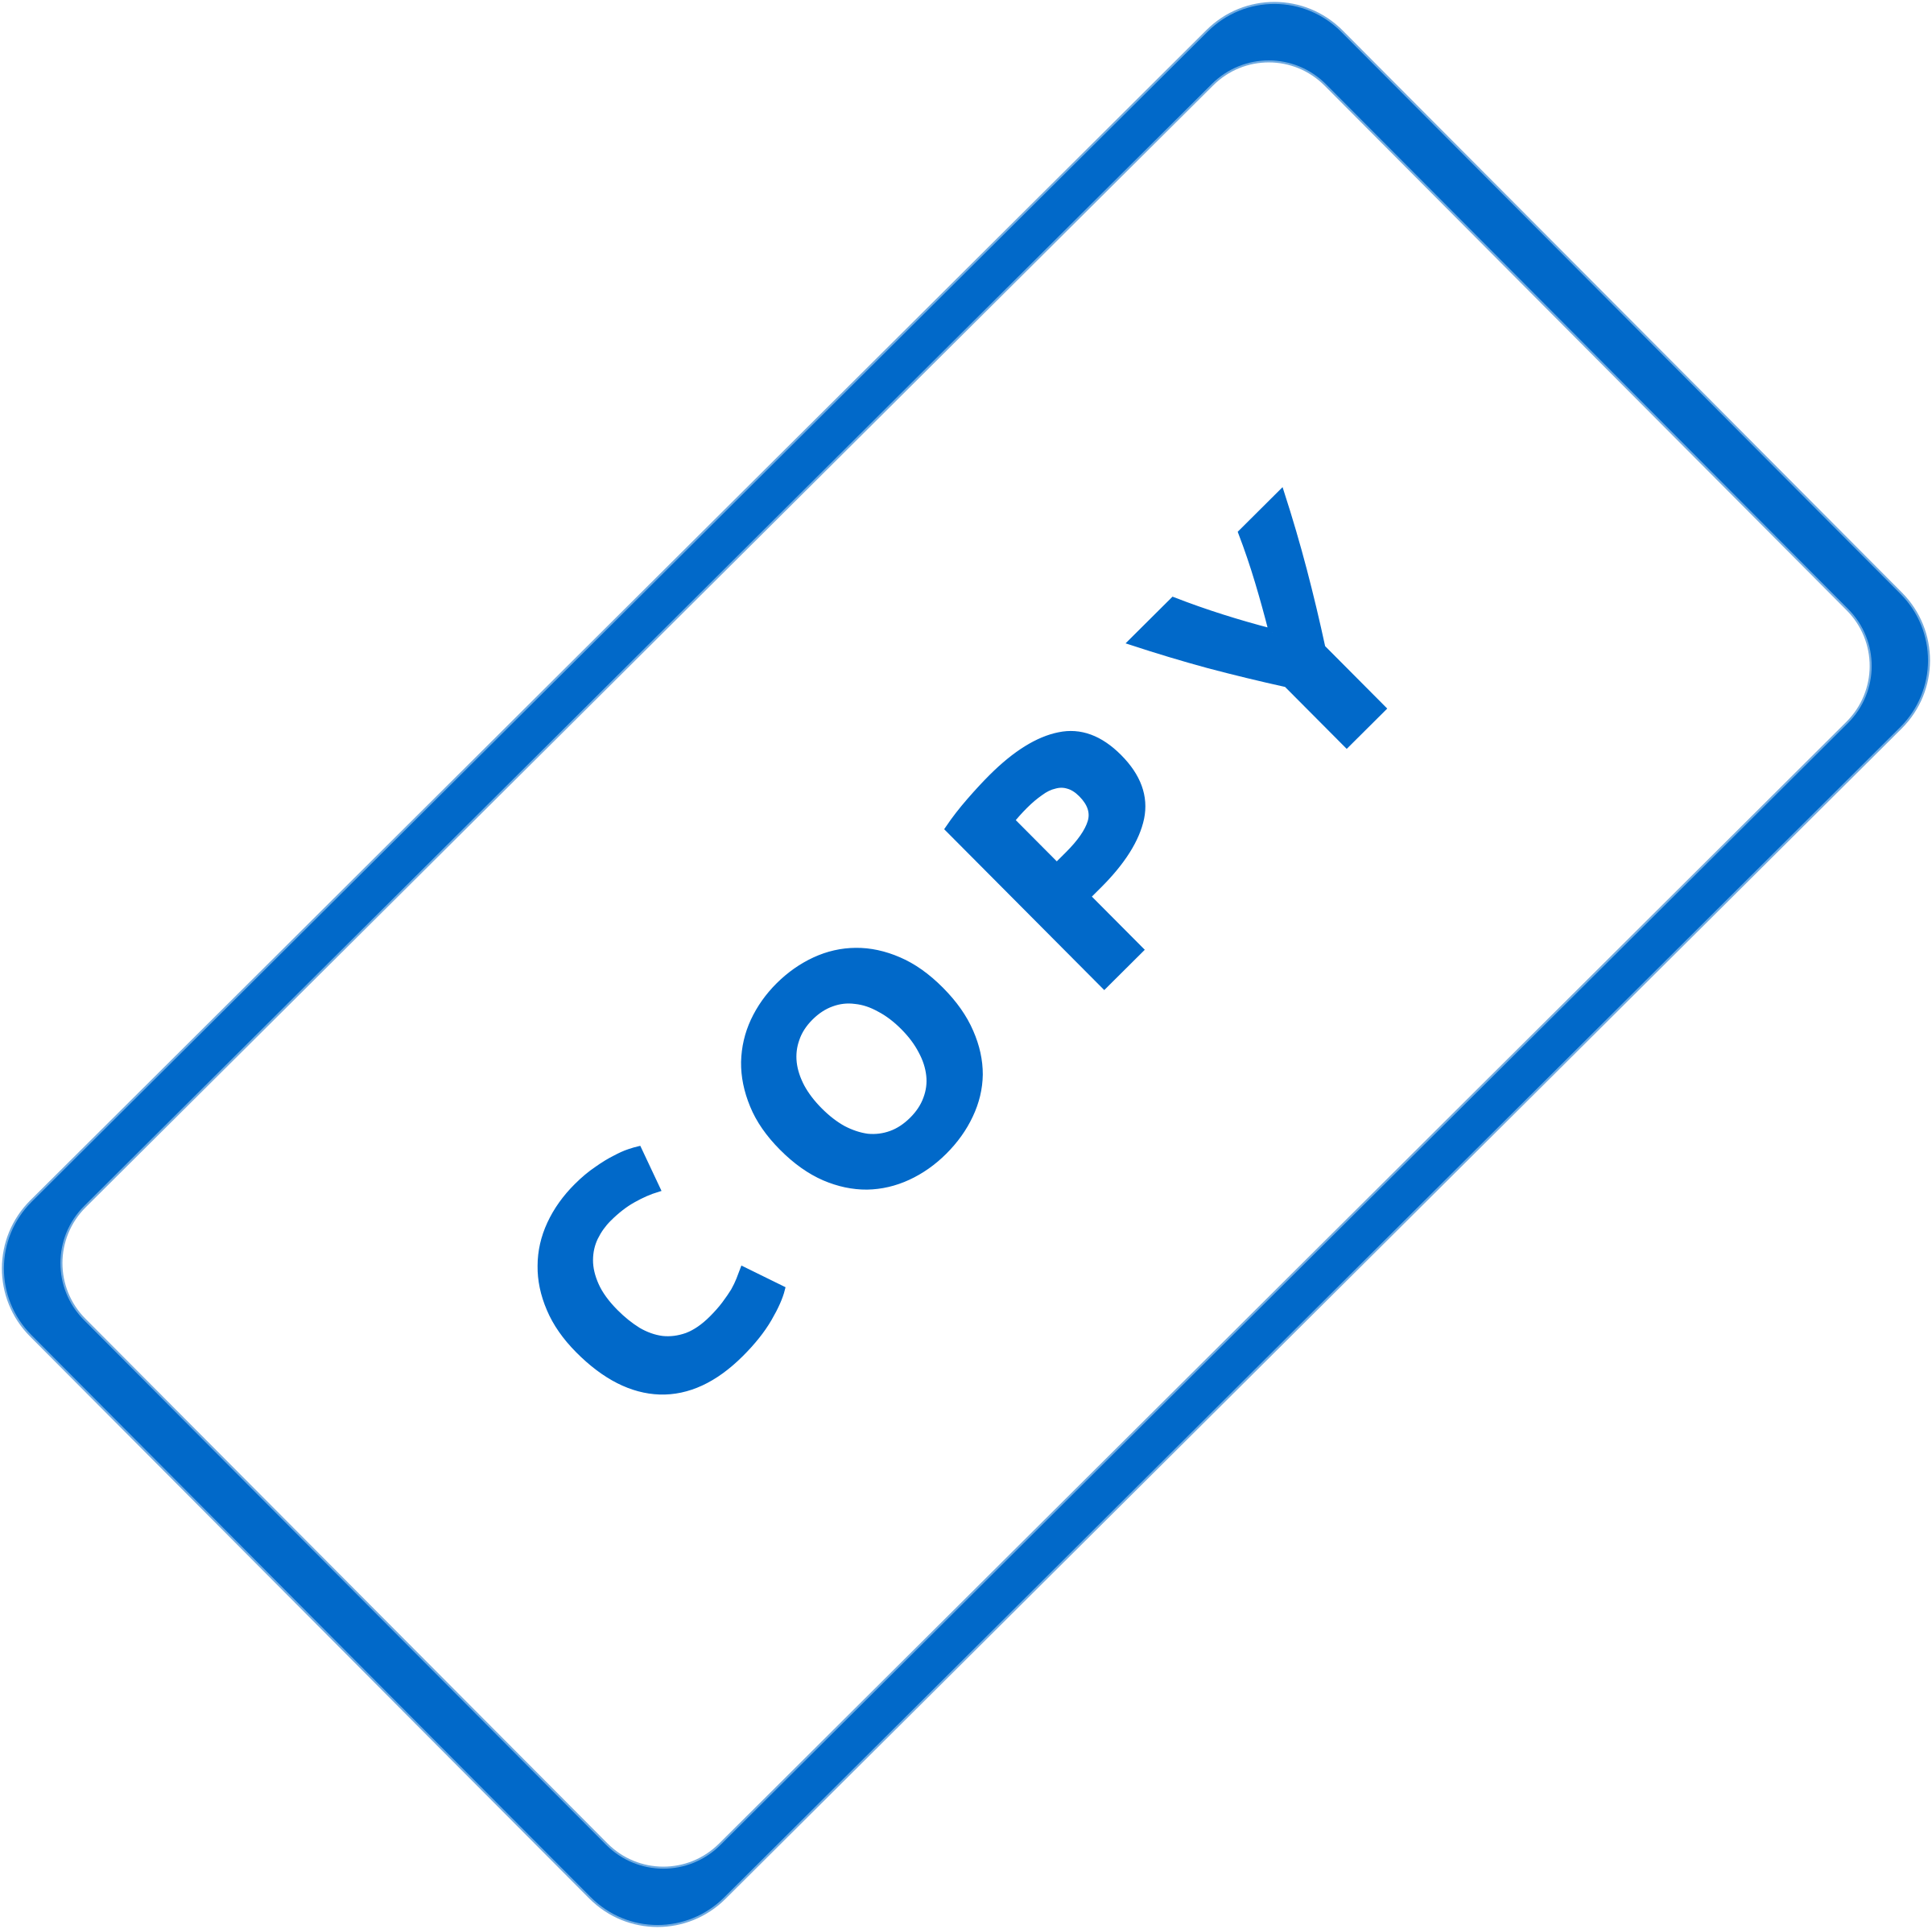 Copy Business Stamp 1 by Merlin2525